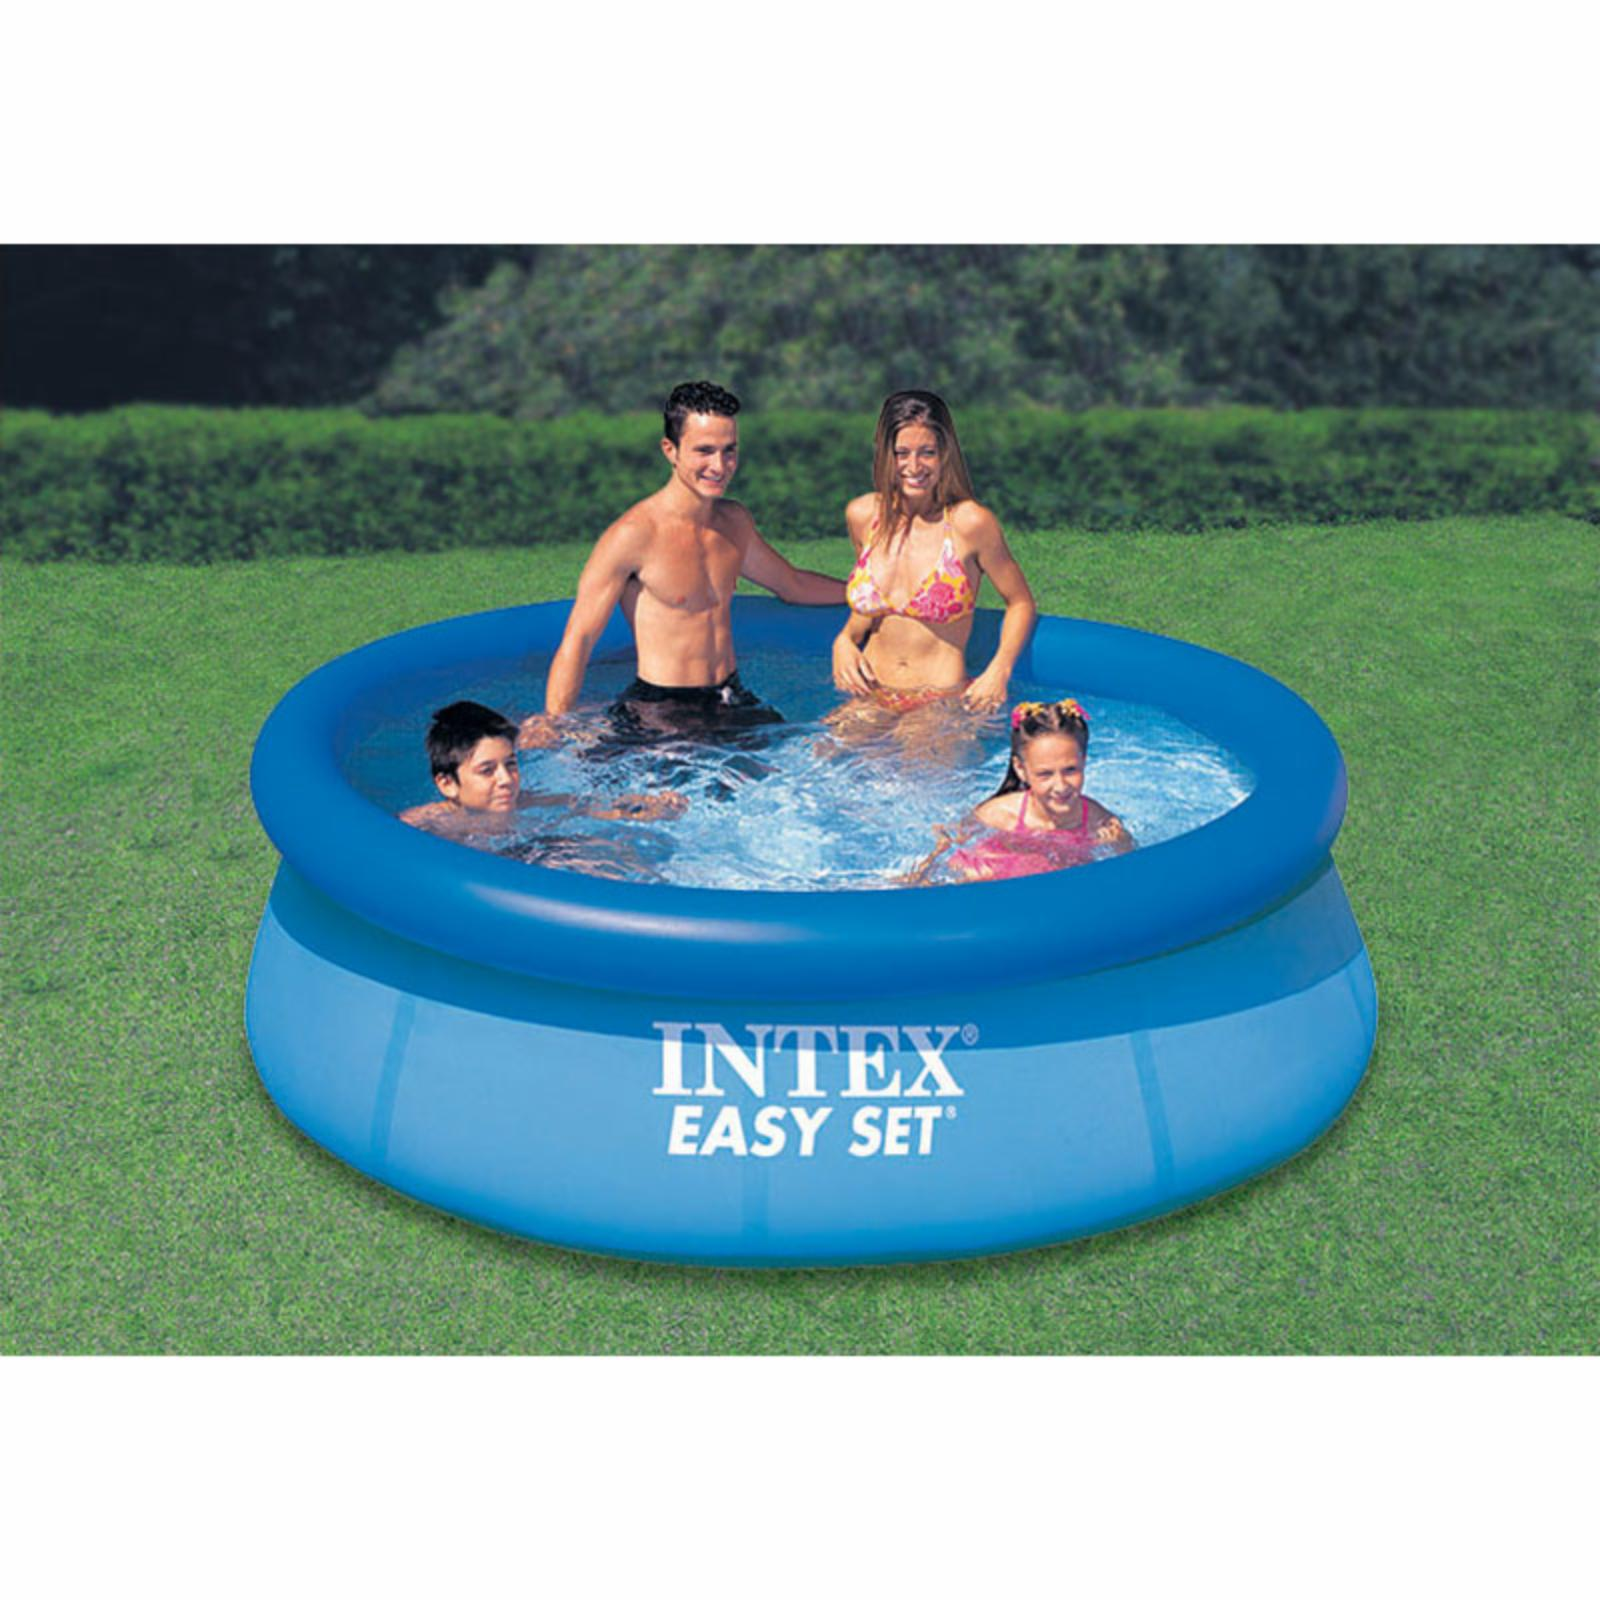 intex easy set pool shop your way online shopping. Black Bedroom Furniture Sets. Home Design Ideas